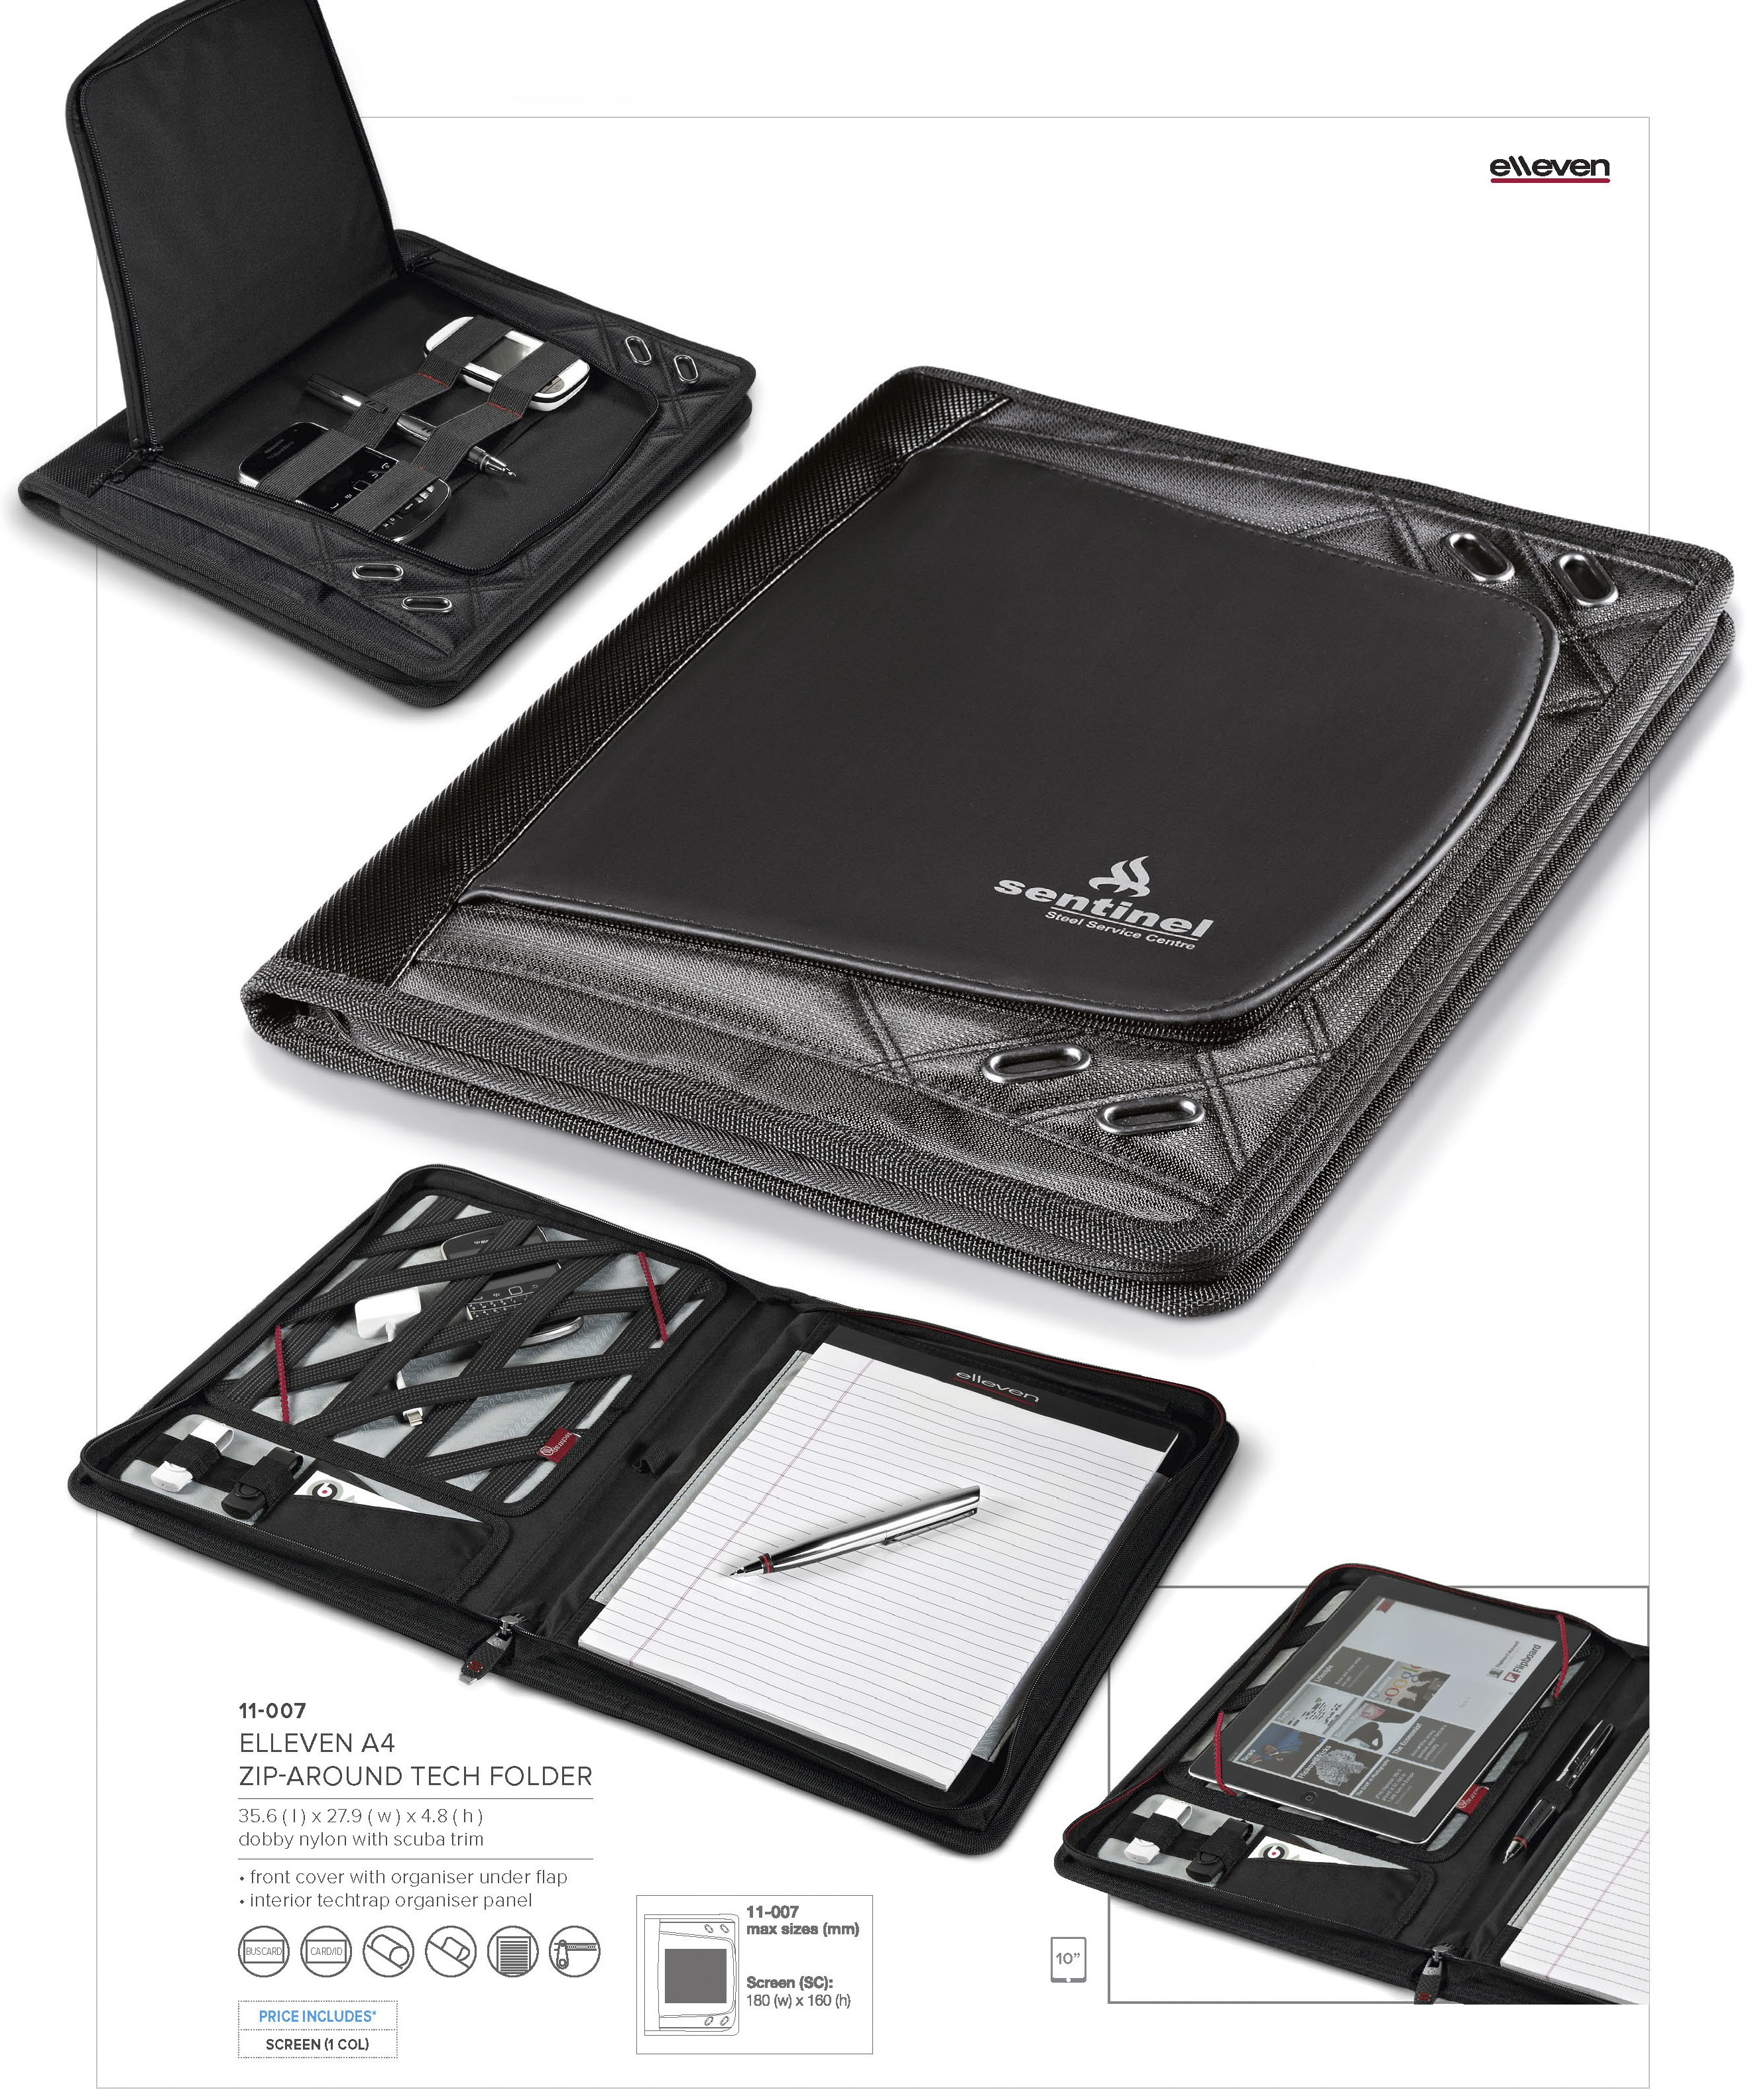 elleven a4 zip around tablet folder